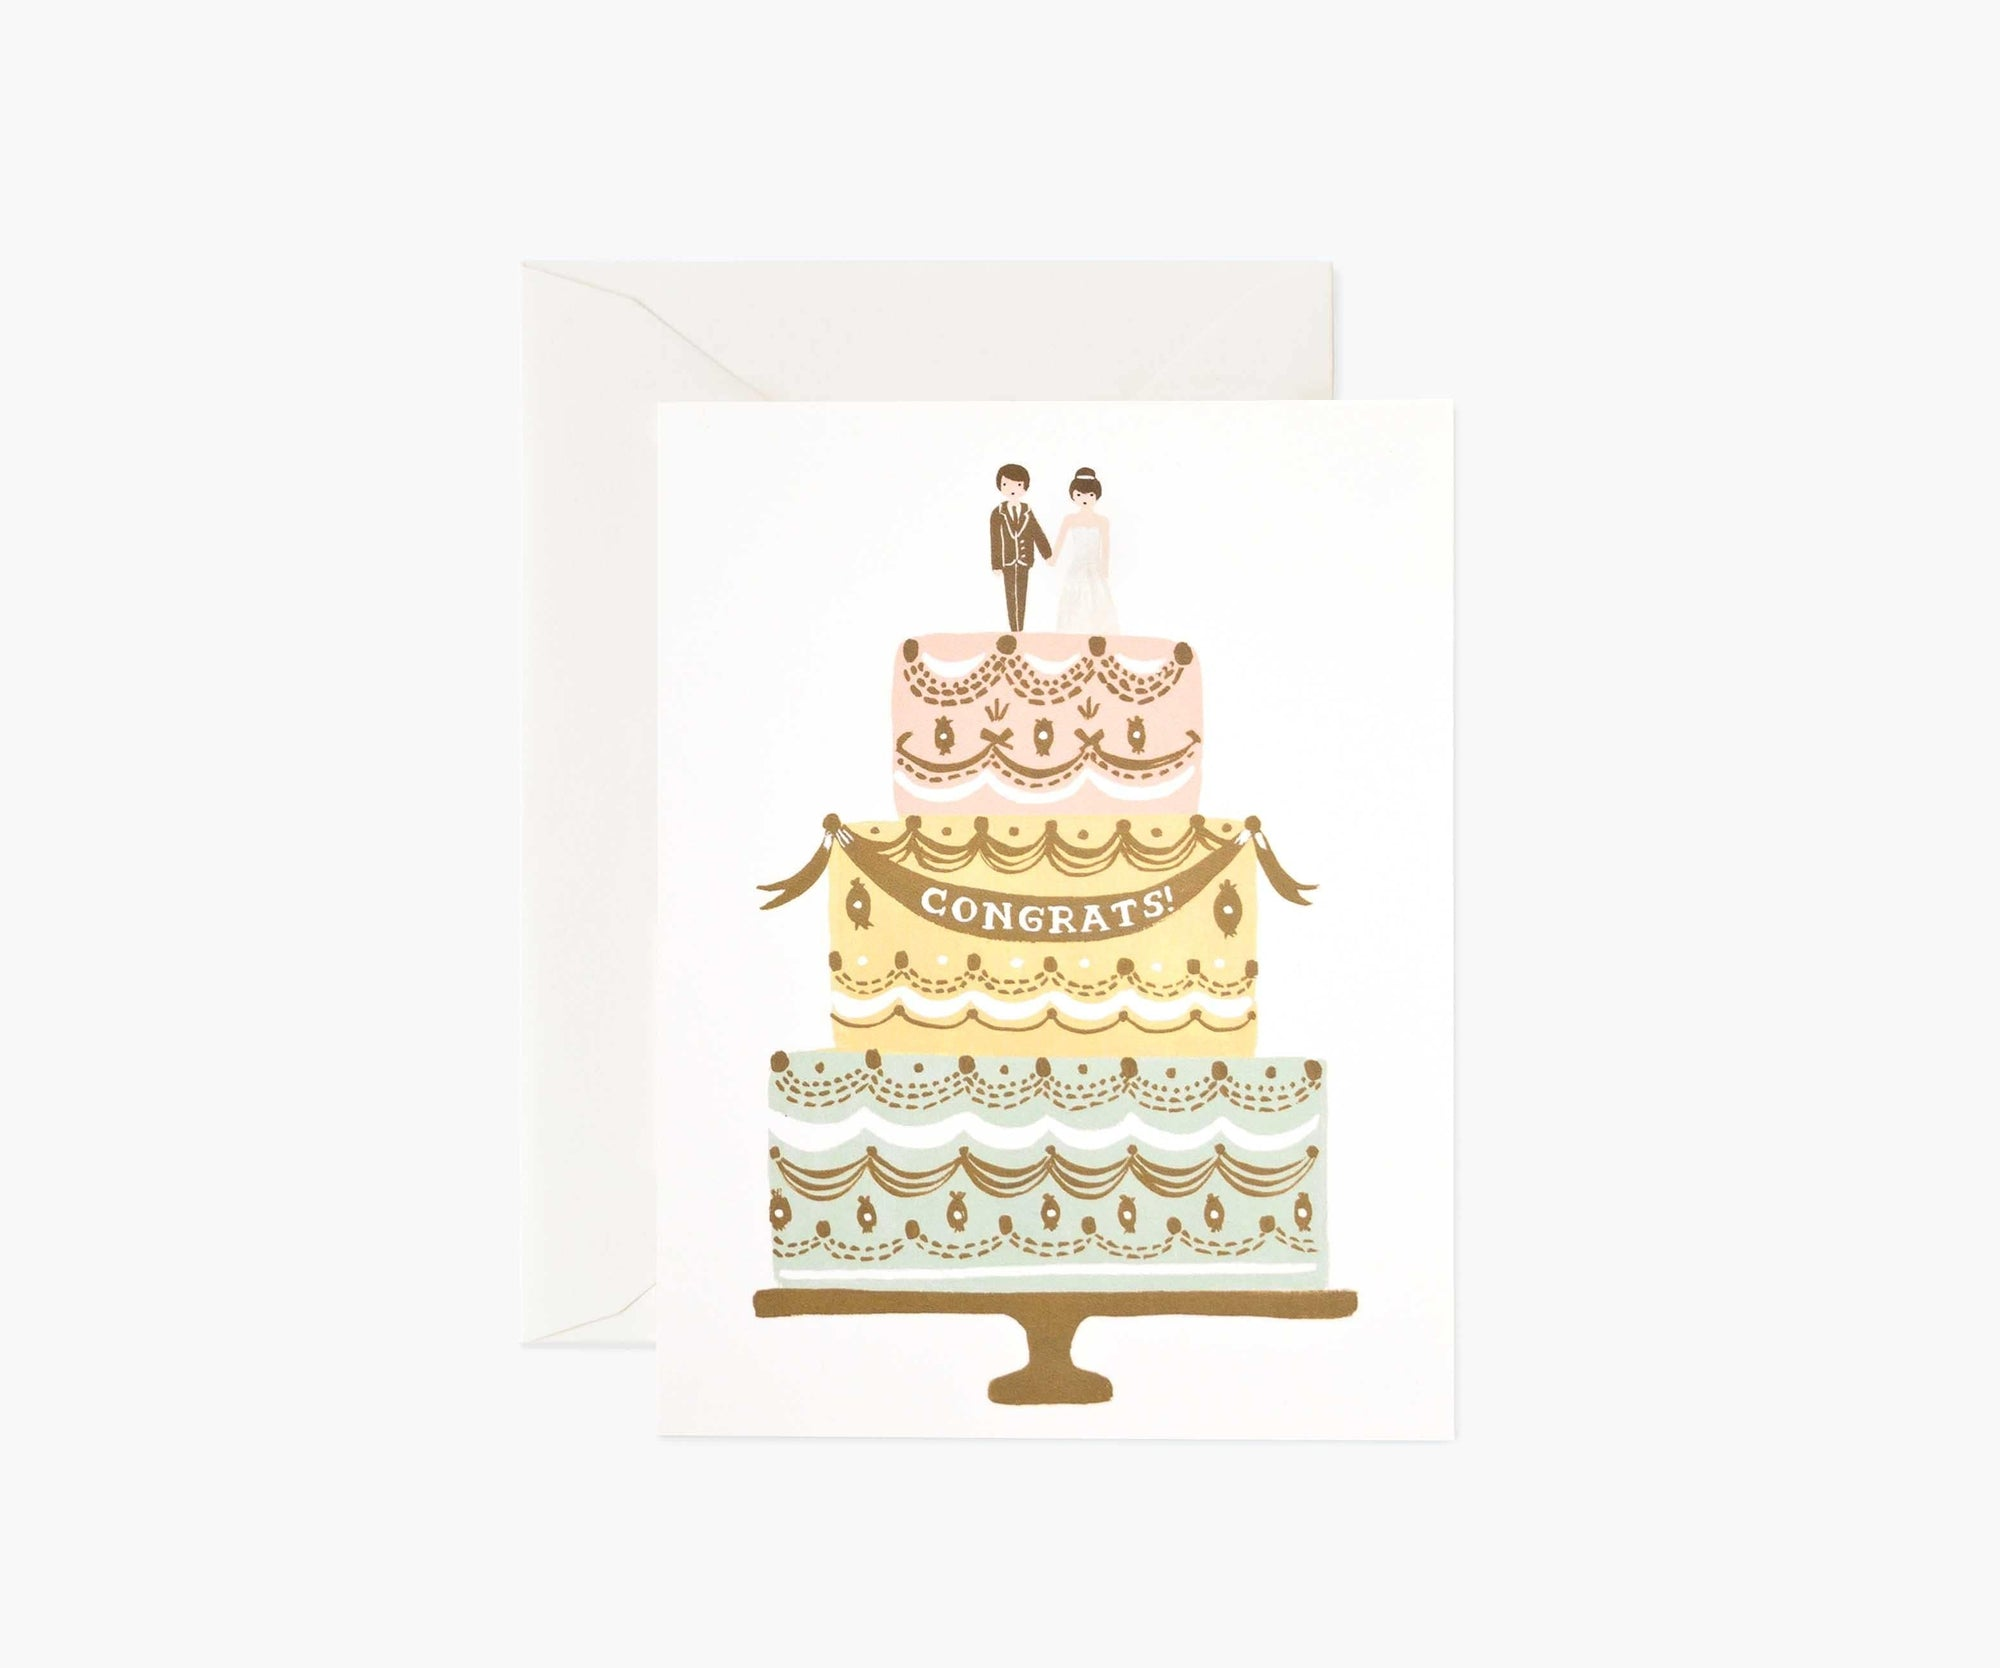 Congrats Wedding Cake Card Rifle Paper Co Cards